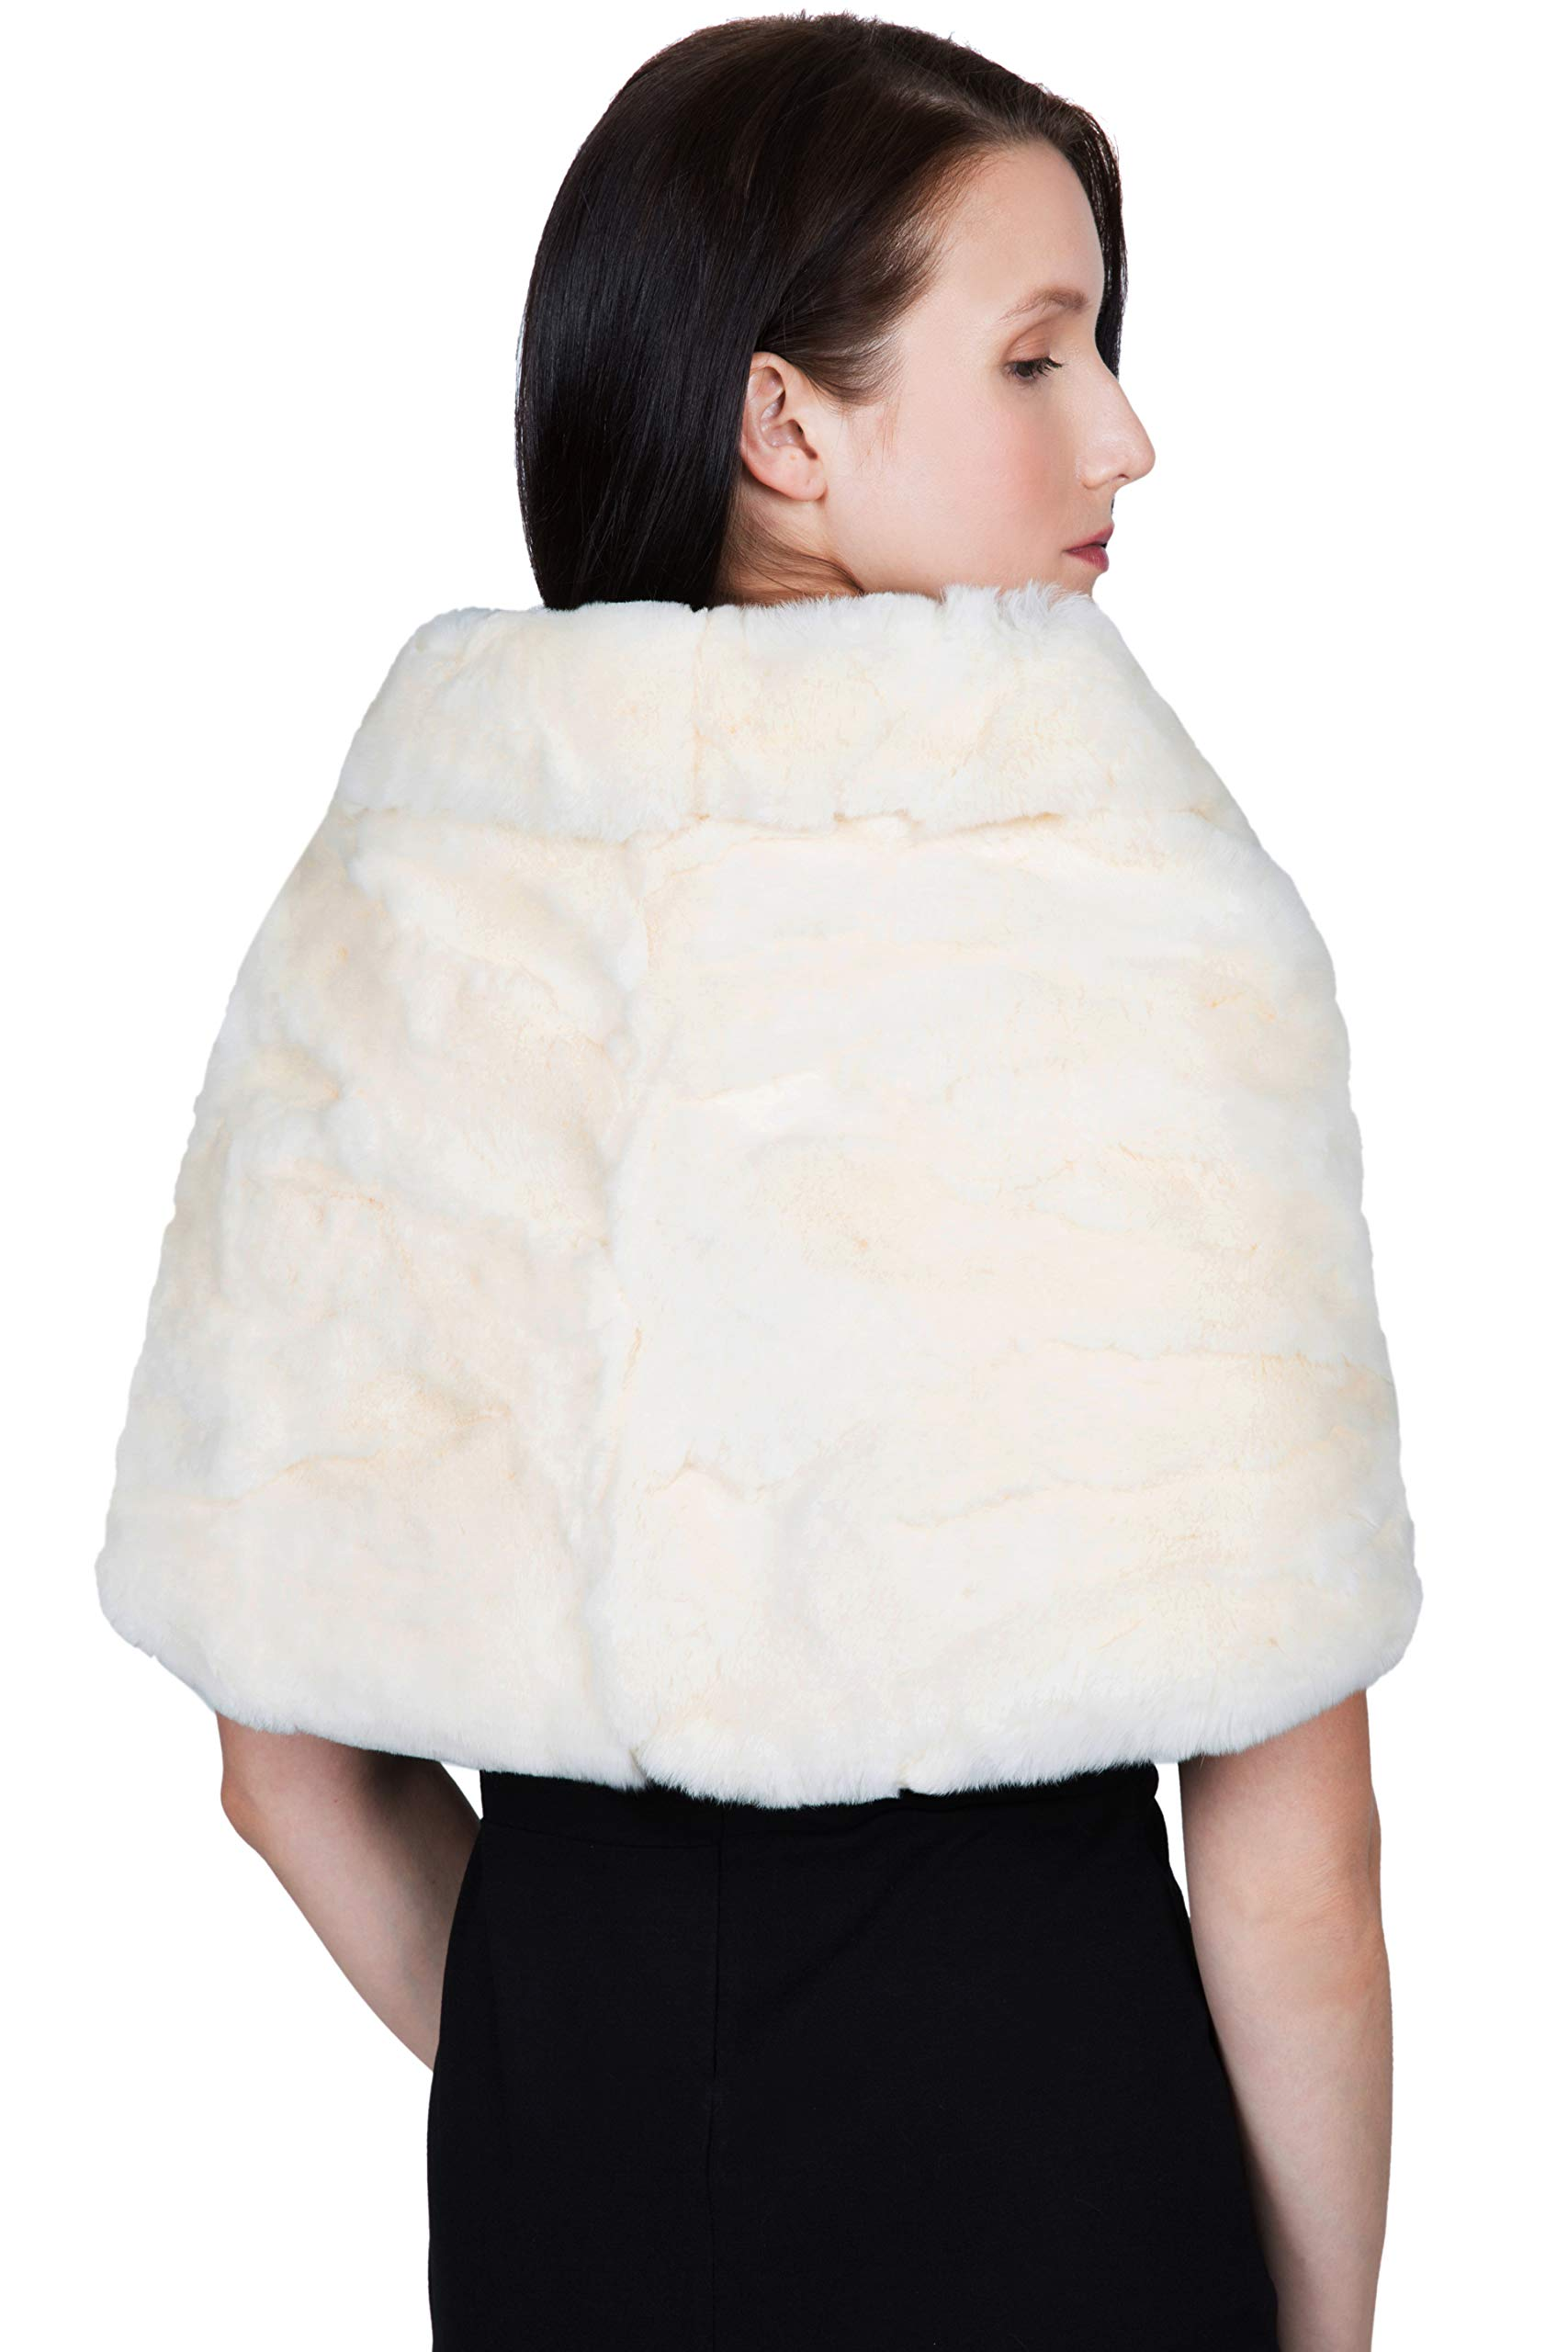 OBURLA Women's Rex Rabbit Fur Cape with Collar | Soft and Luxurious Real Fur Shawl Wrap Stole (Beige) by OBURLA (Image #6)